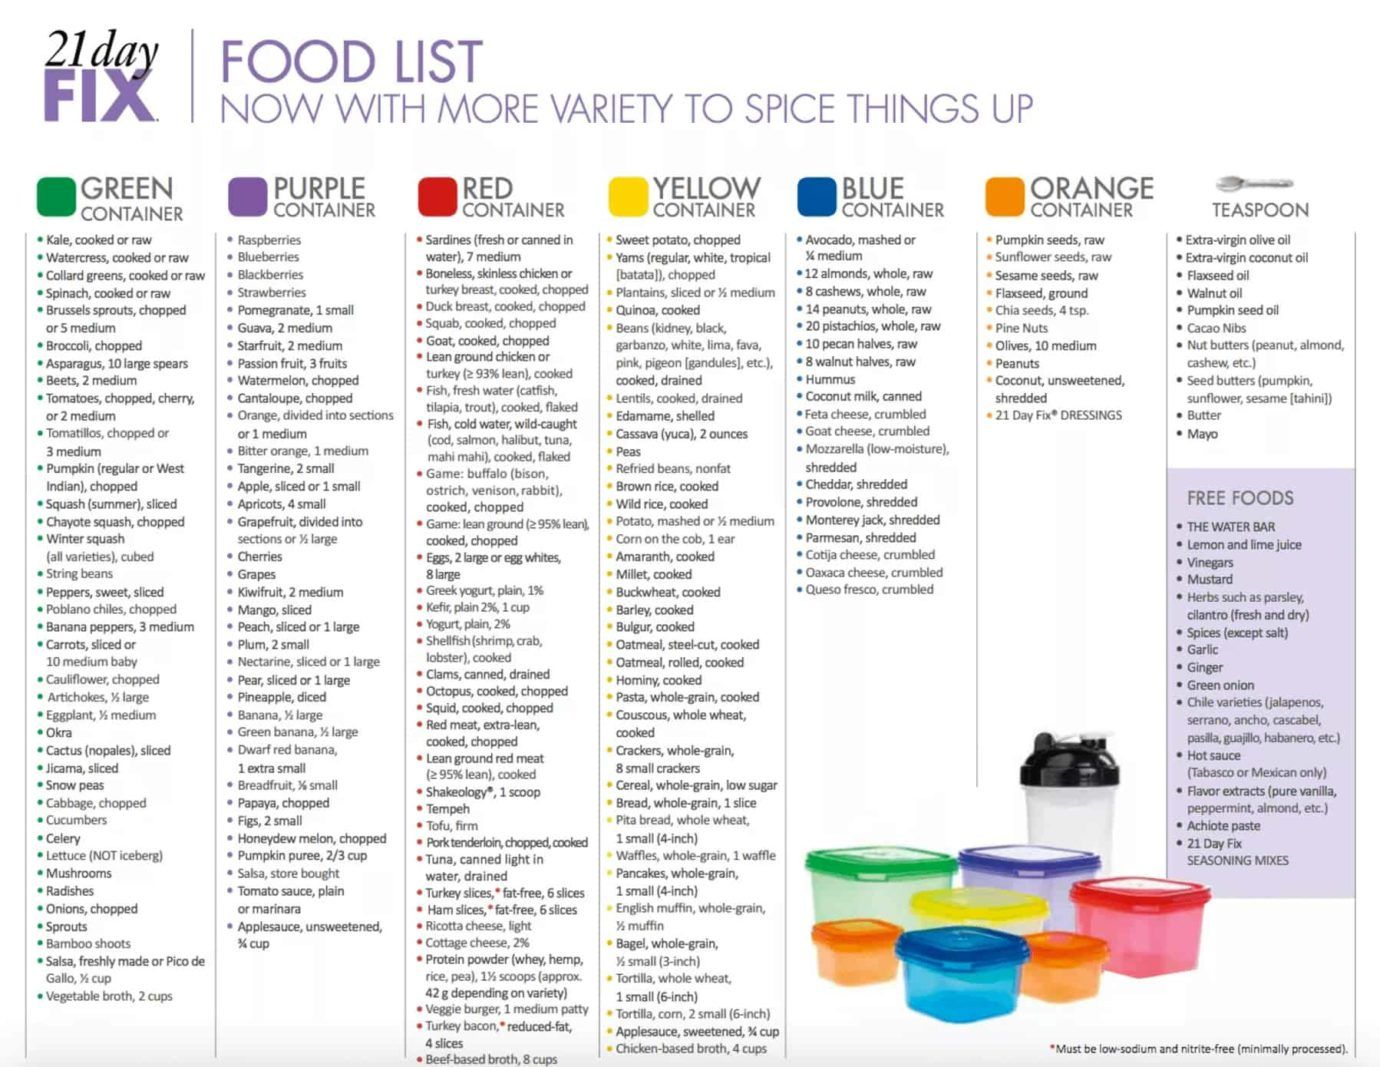 New 21 Day Fix Food List Printable  Plus 11 Simple Tips to Meal Prep is part of 21 day fix meals, 21 day fix meal plan, Beachbody 21 day fix, 21 day fix diet, 21 day fix challenge, 21 day fix plan - The updated 21 Day Fix food list includes bone broth, mayo, and butter! View the new foods Autumn Calabrese approved and their containers